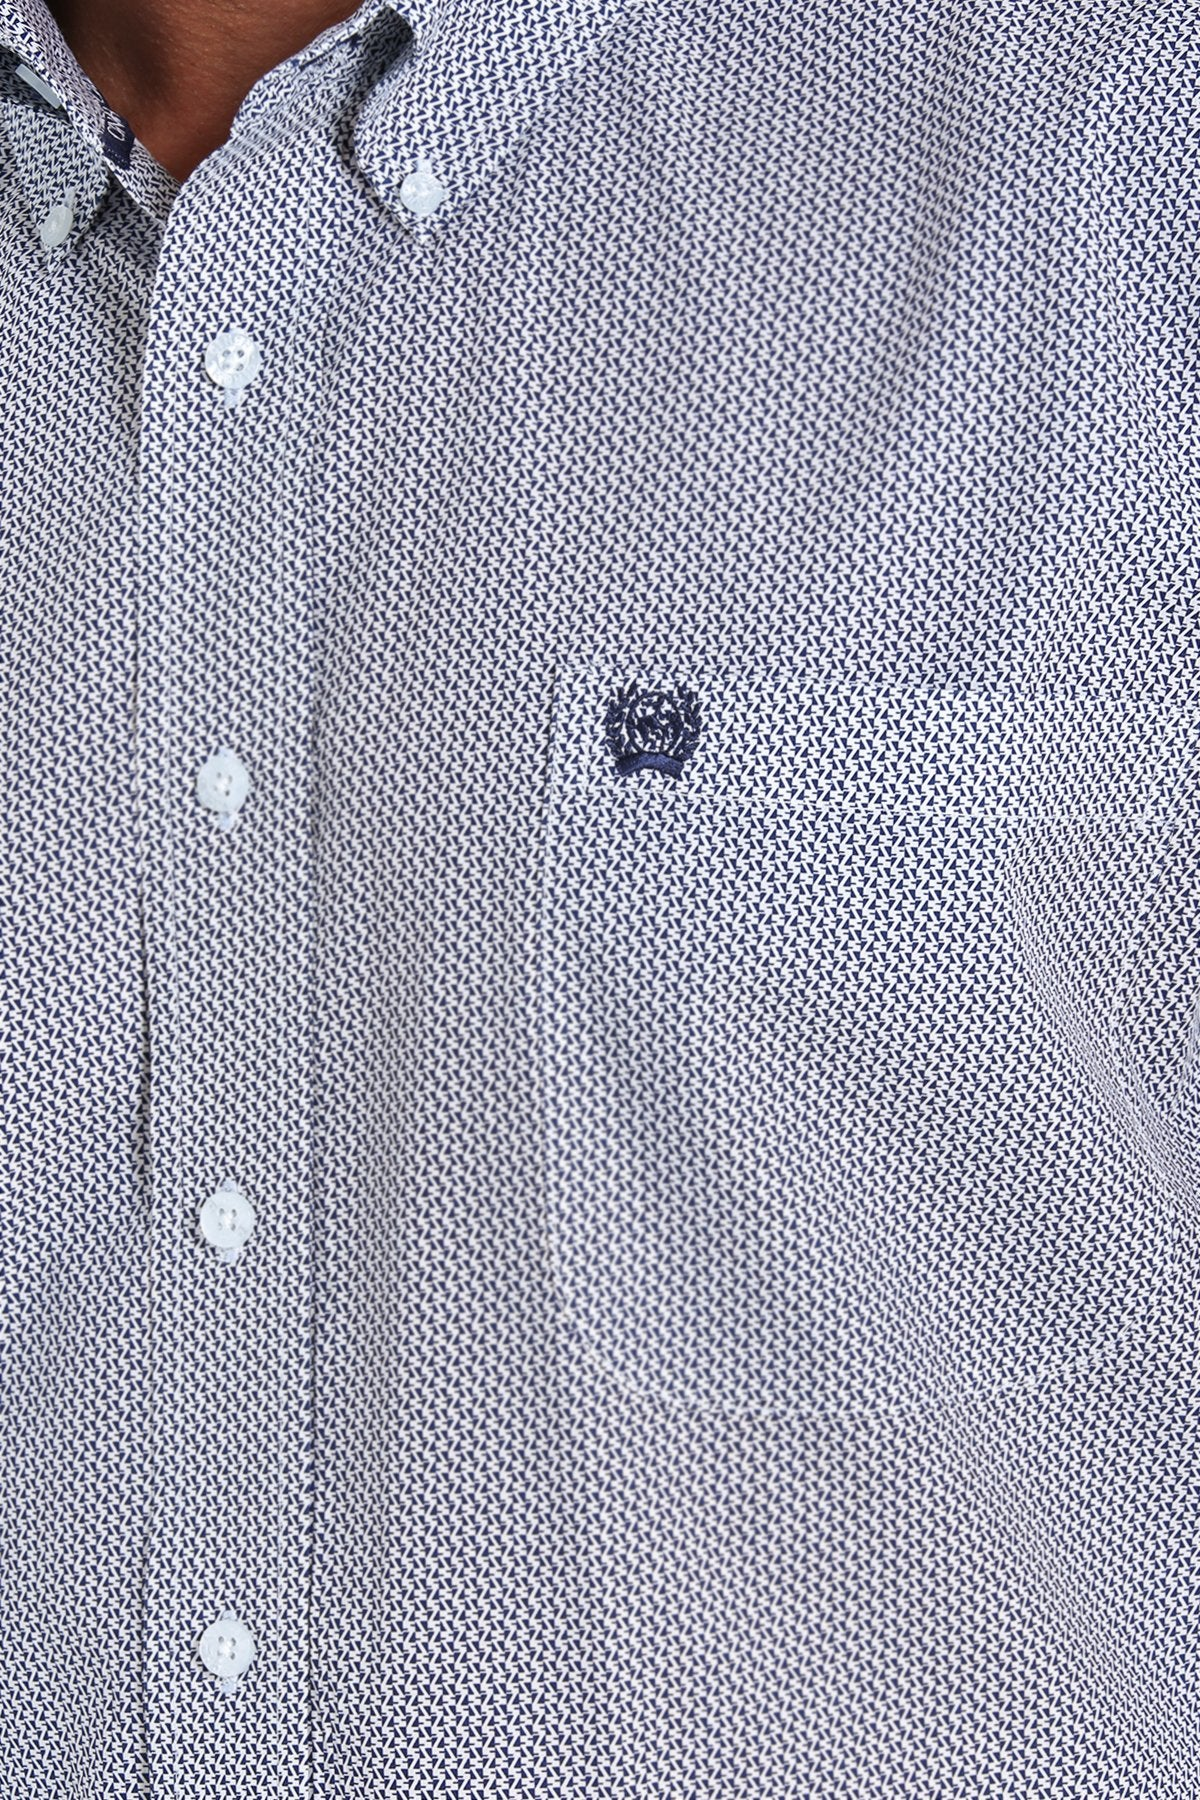 Cinch Navy Print Men's Button Down Shirt